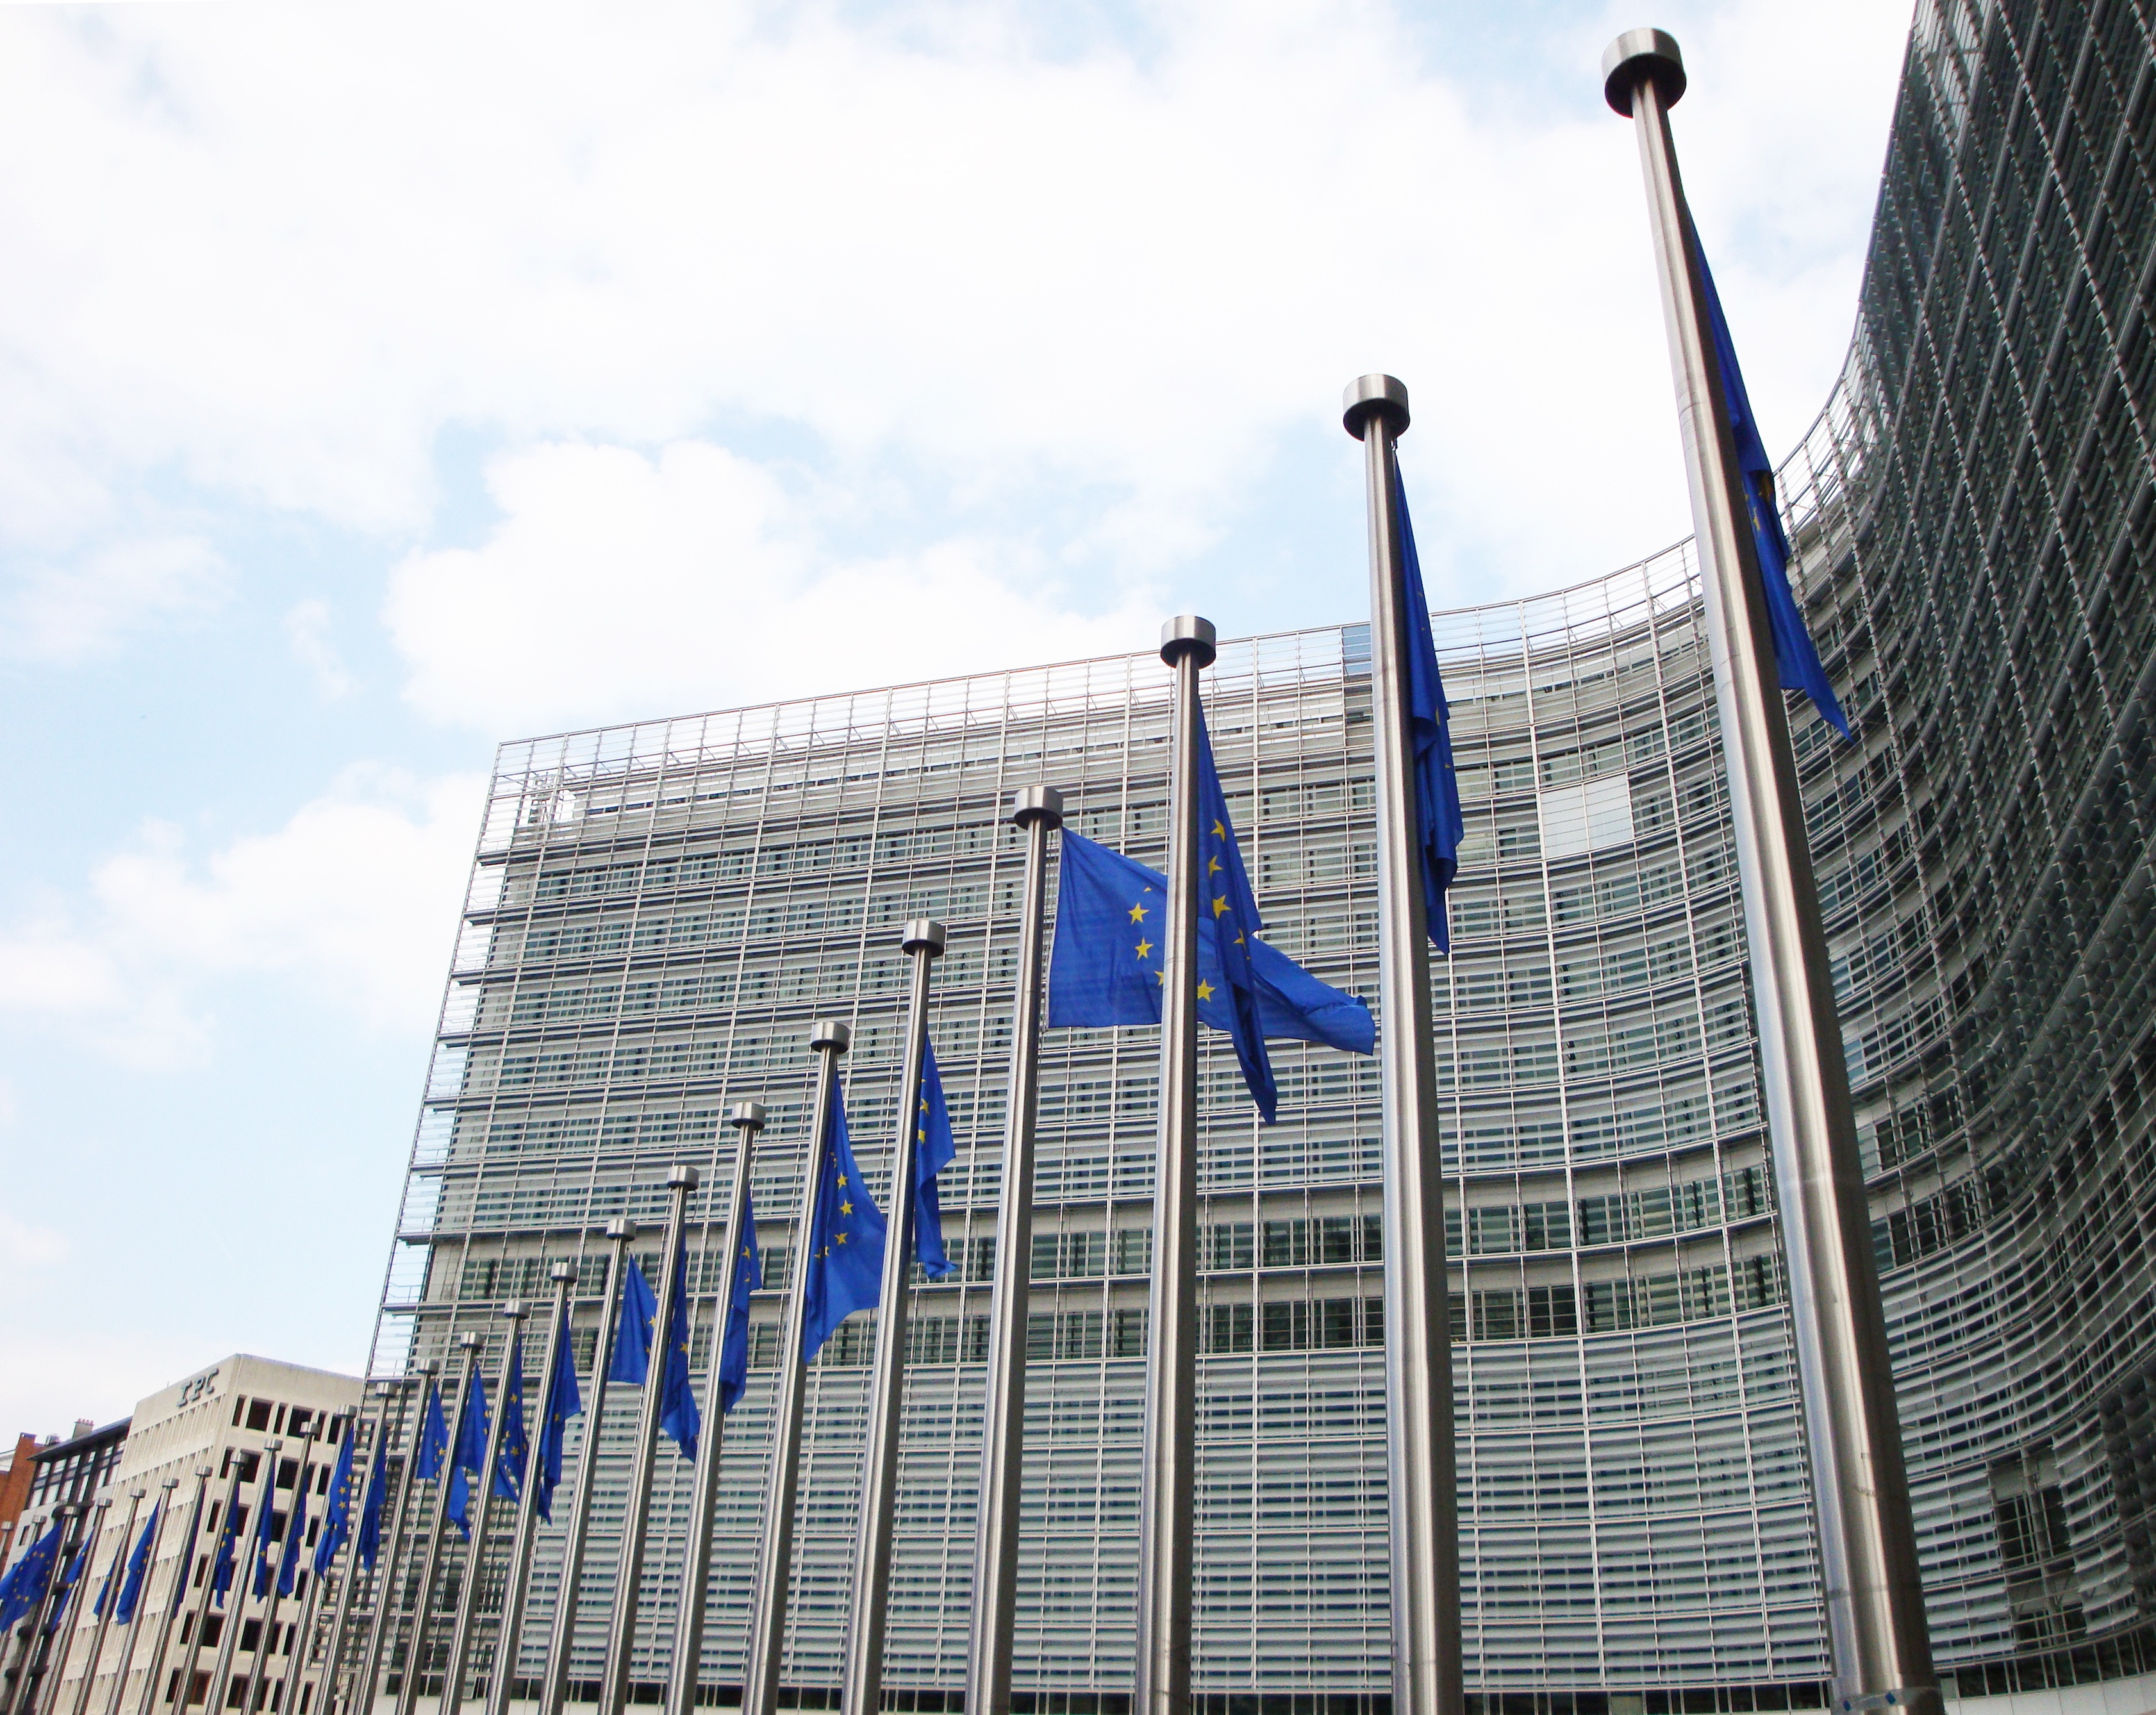 European Commission release Certificate Policy for deployment and operation of C-ITS